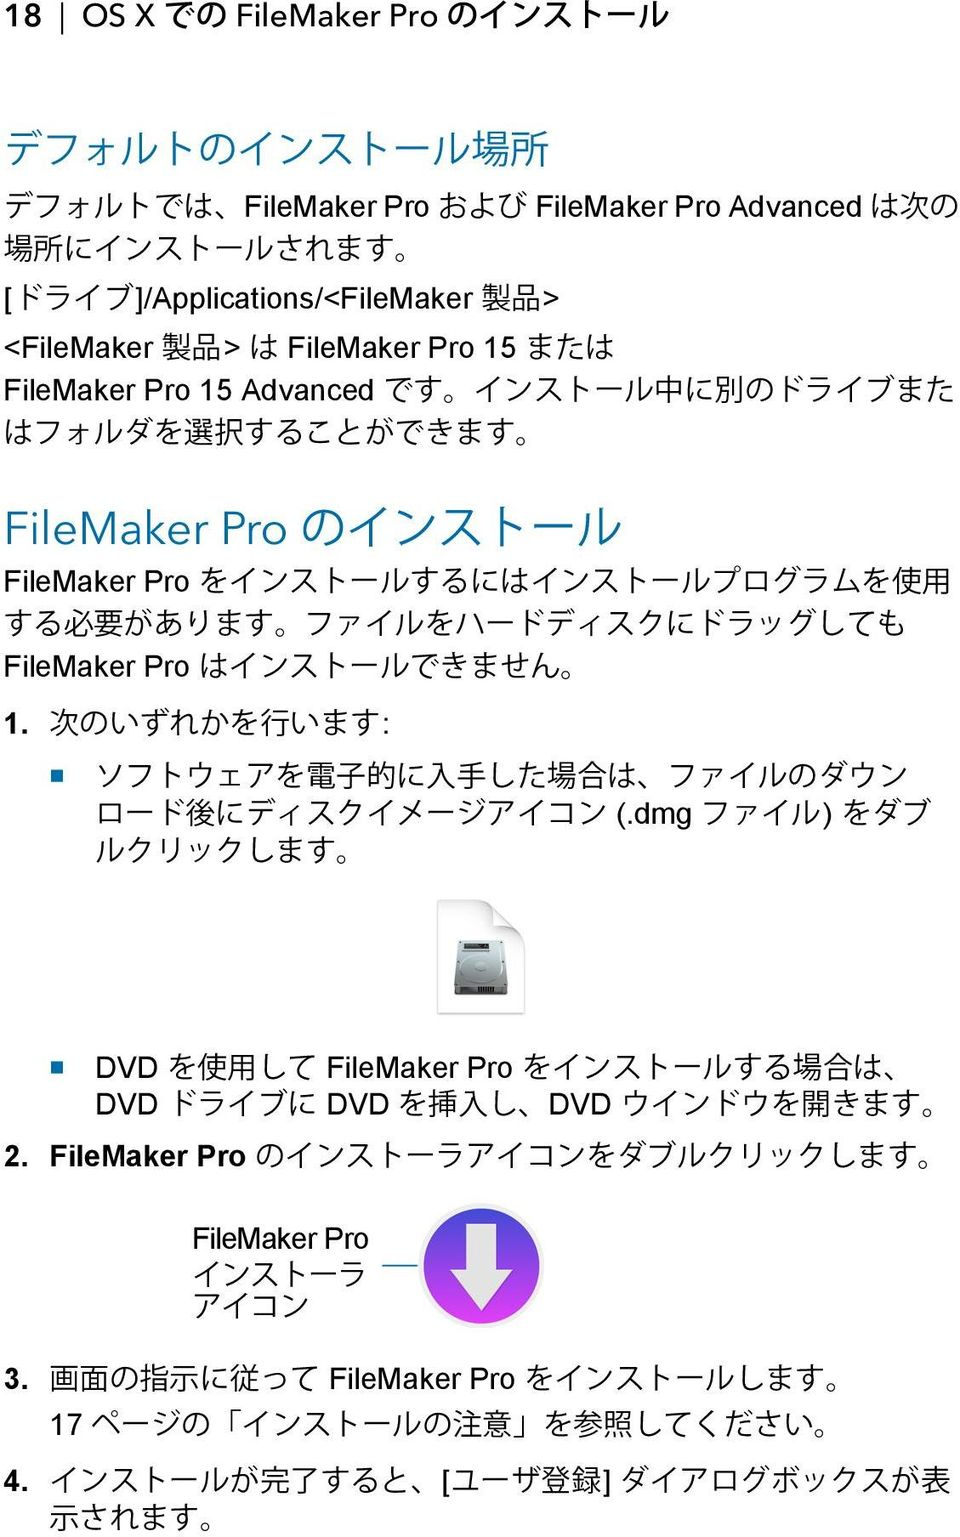 15 Advanced FileMaker Pro FileMaker Pro FileMaker Pro 1. : 1 (.